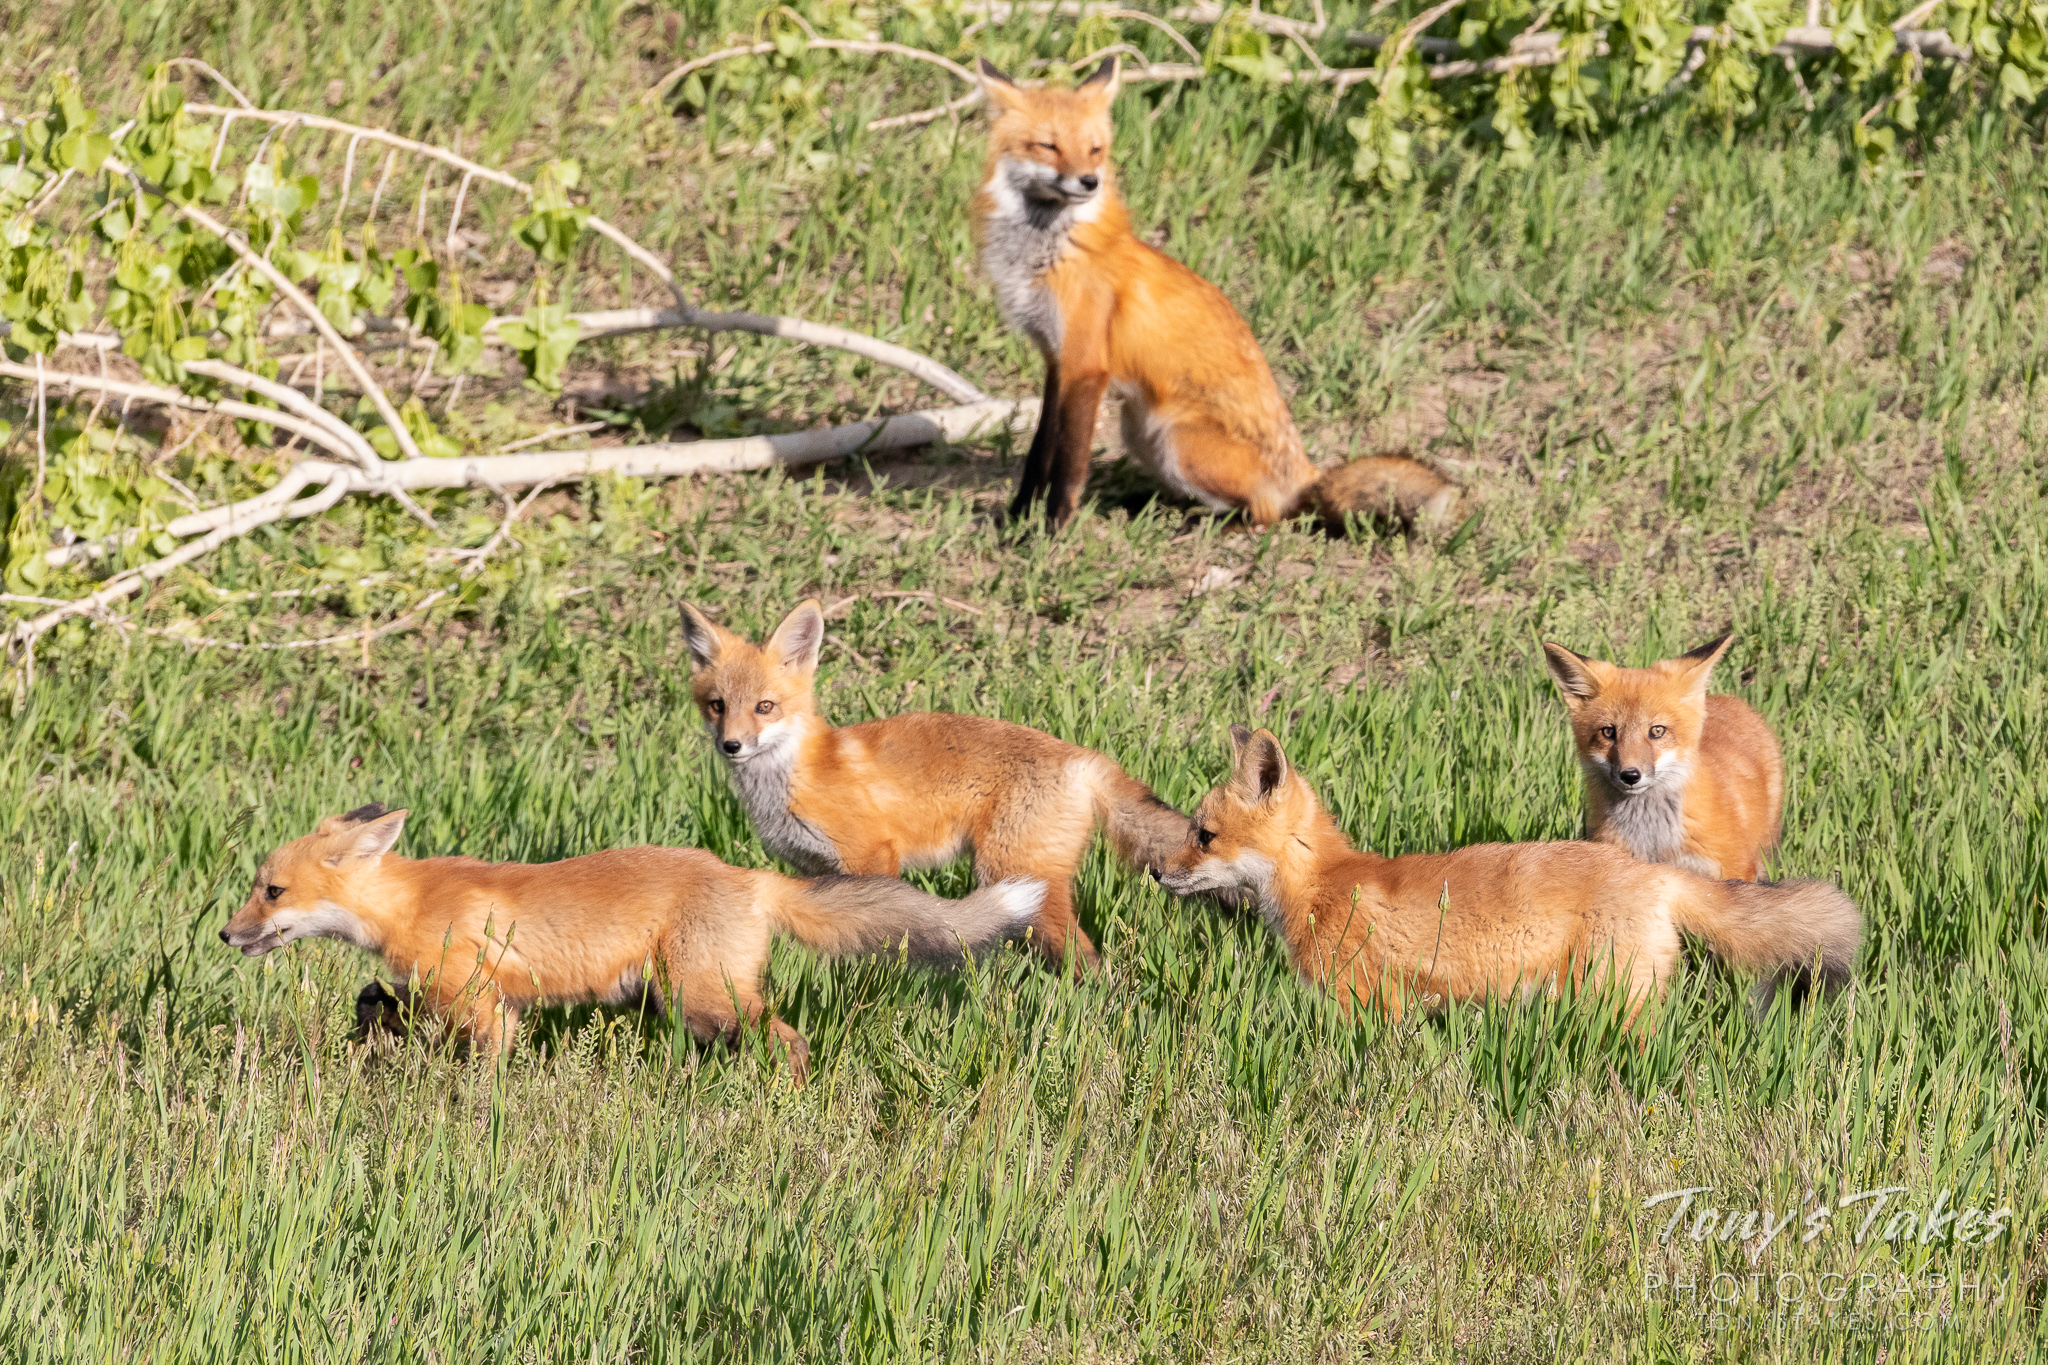 All in the family for Fox Friday